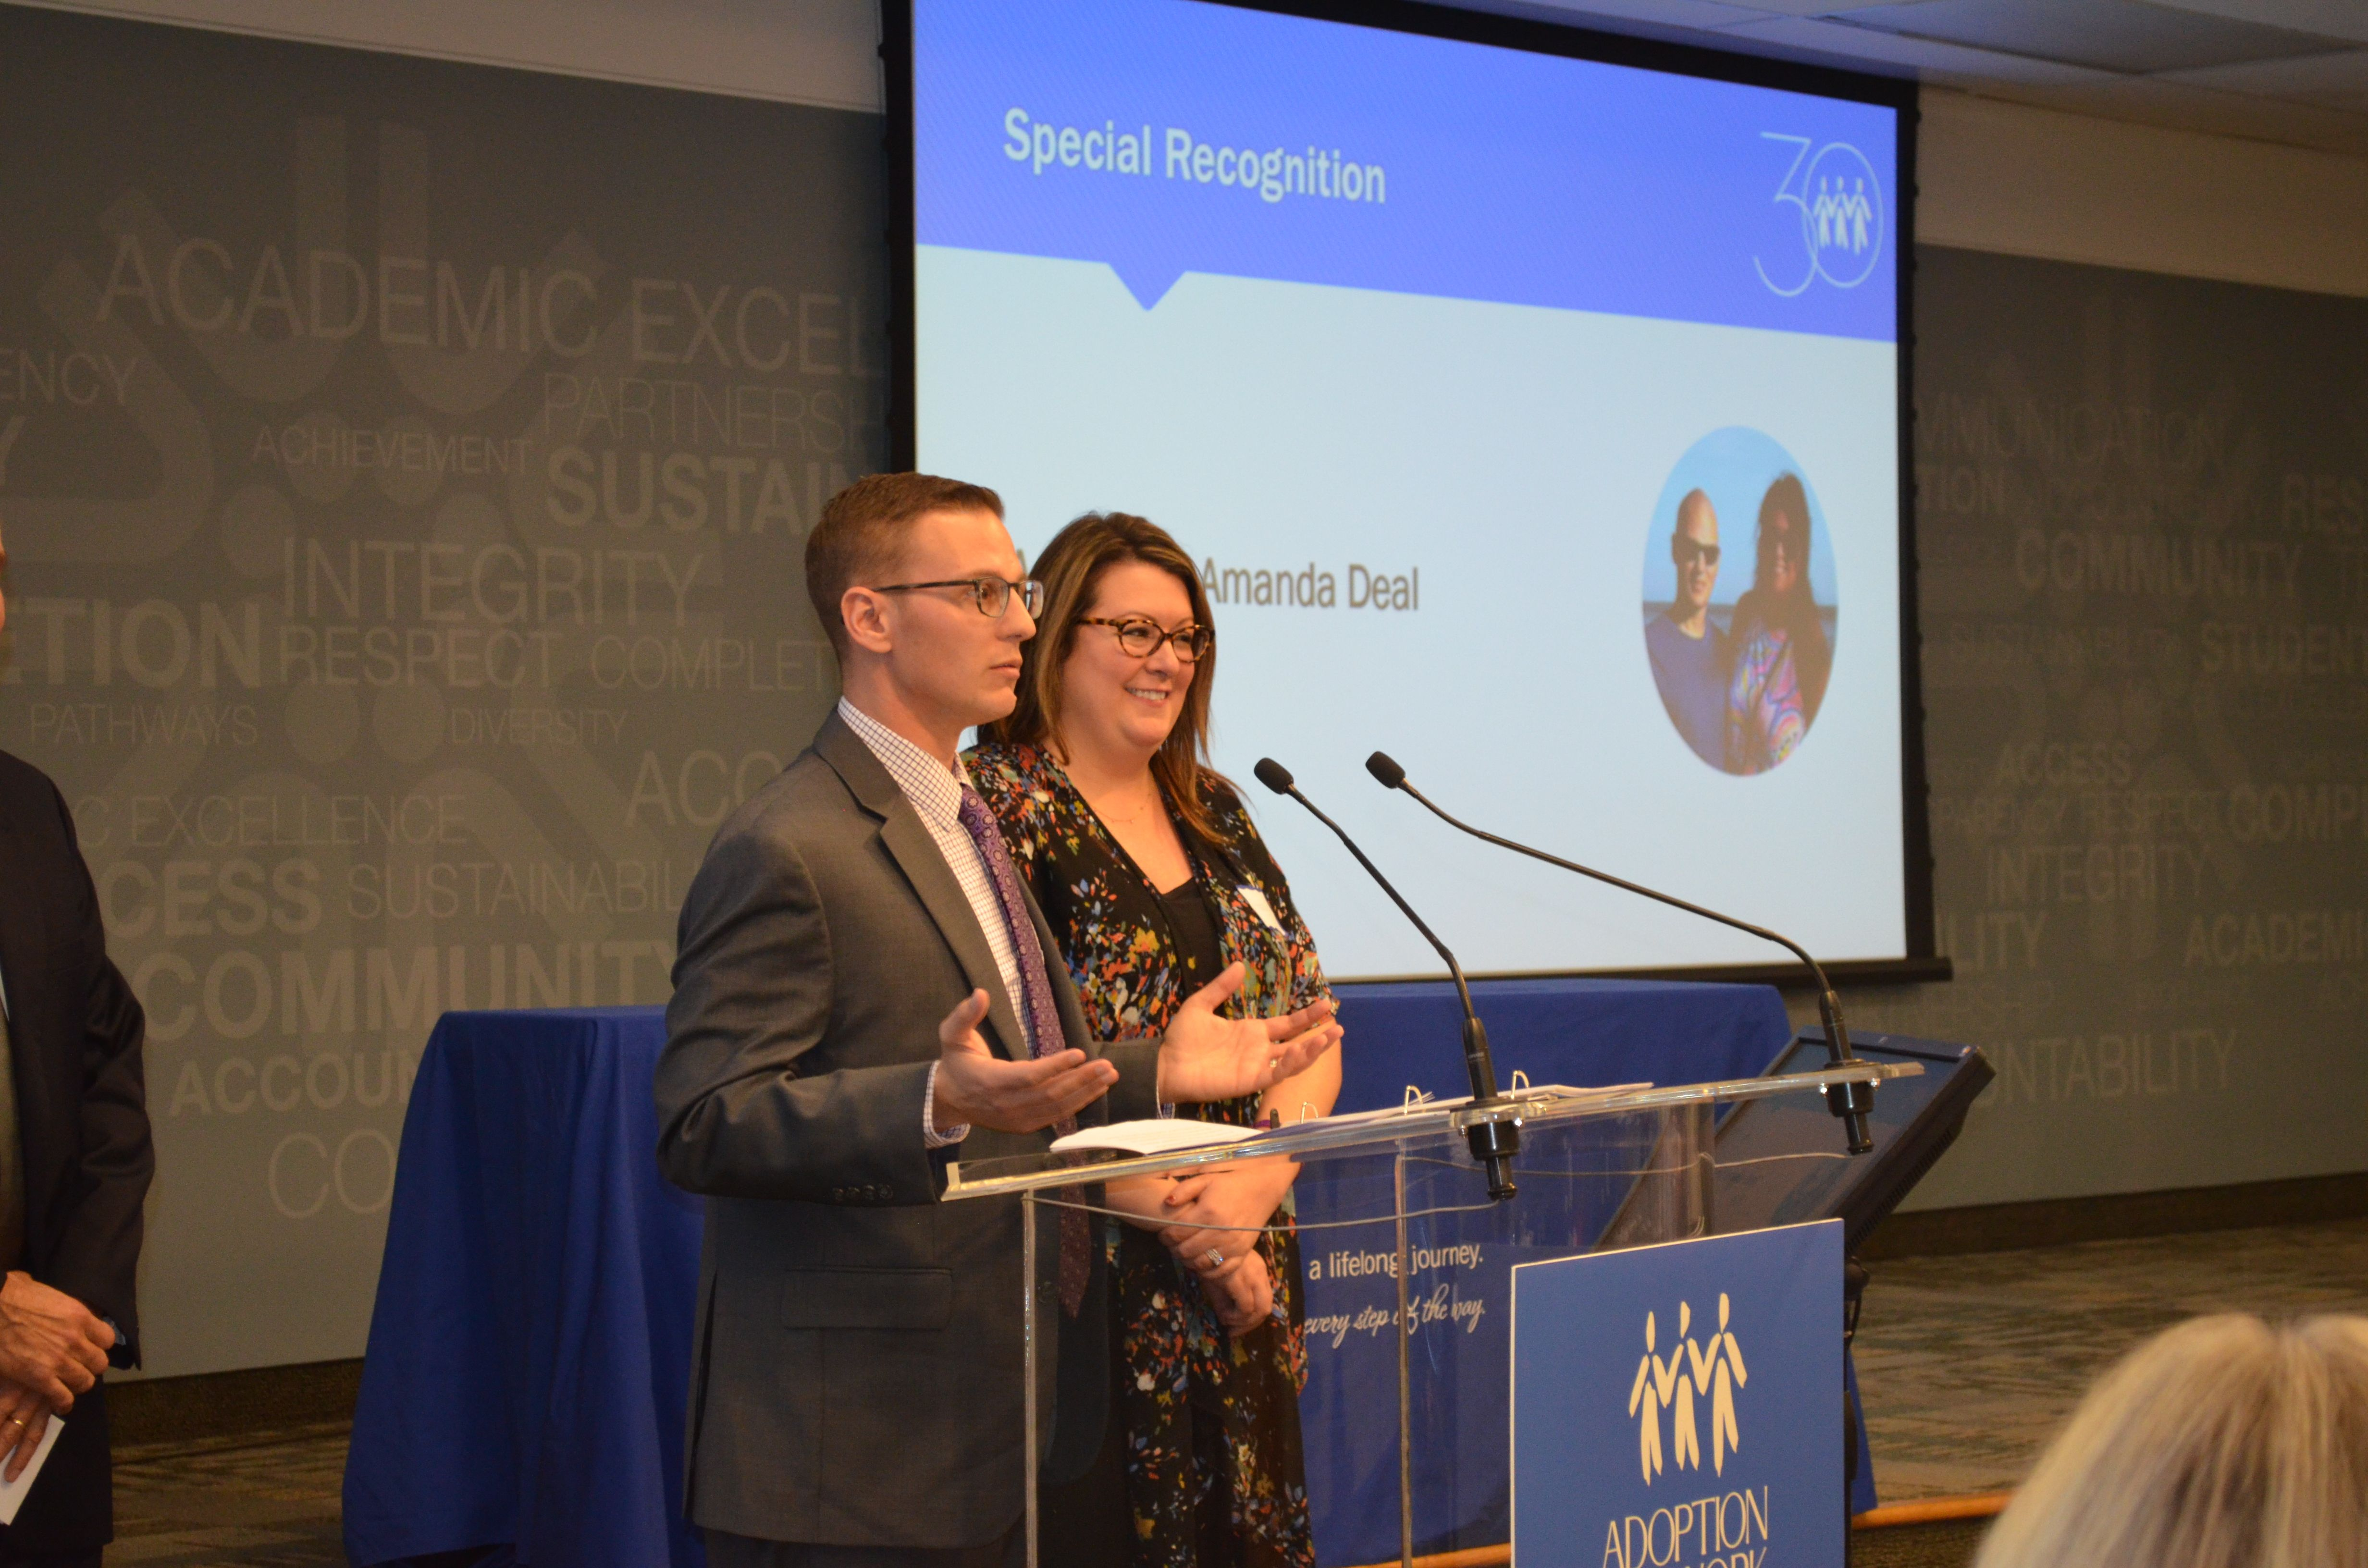 Adoptive Parents Receive Special Recognition Award